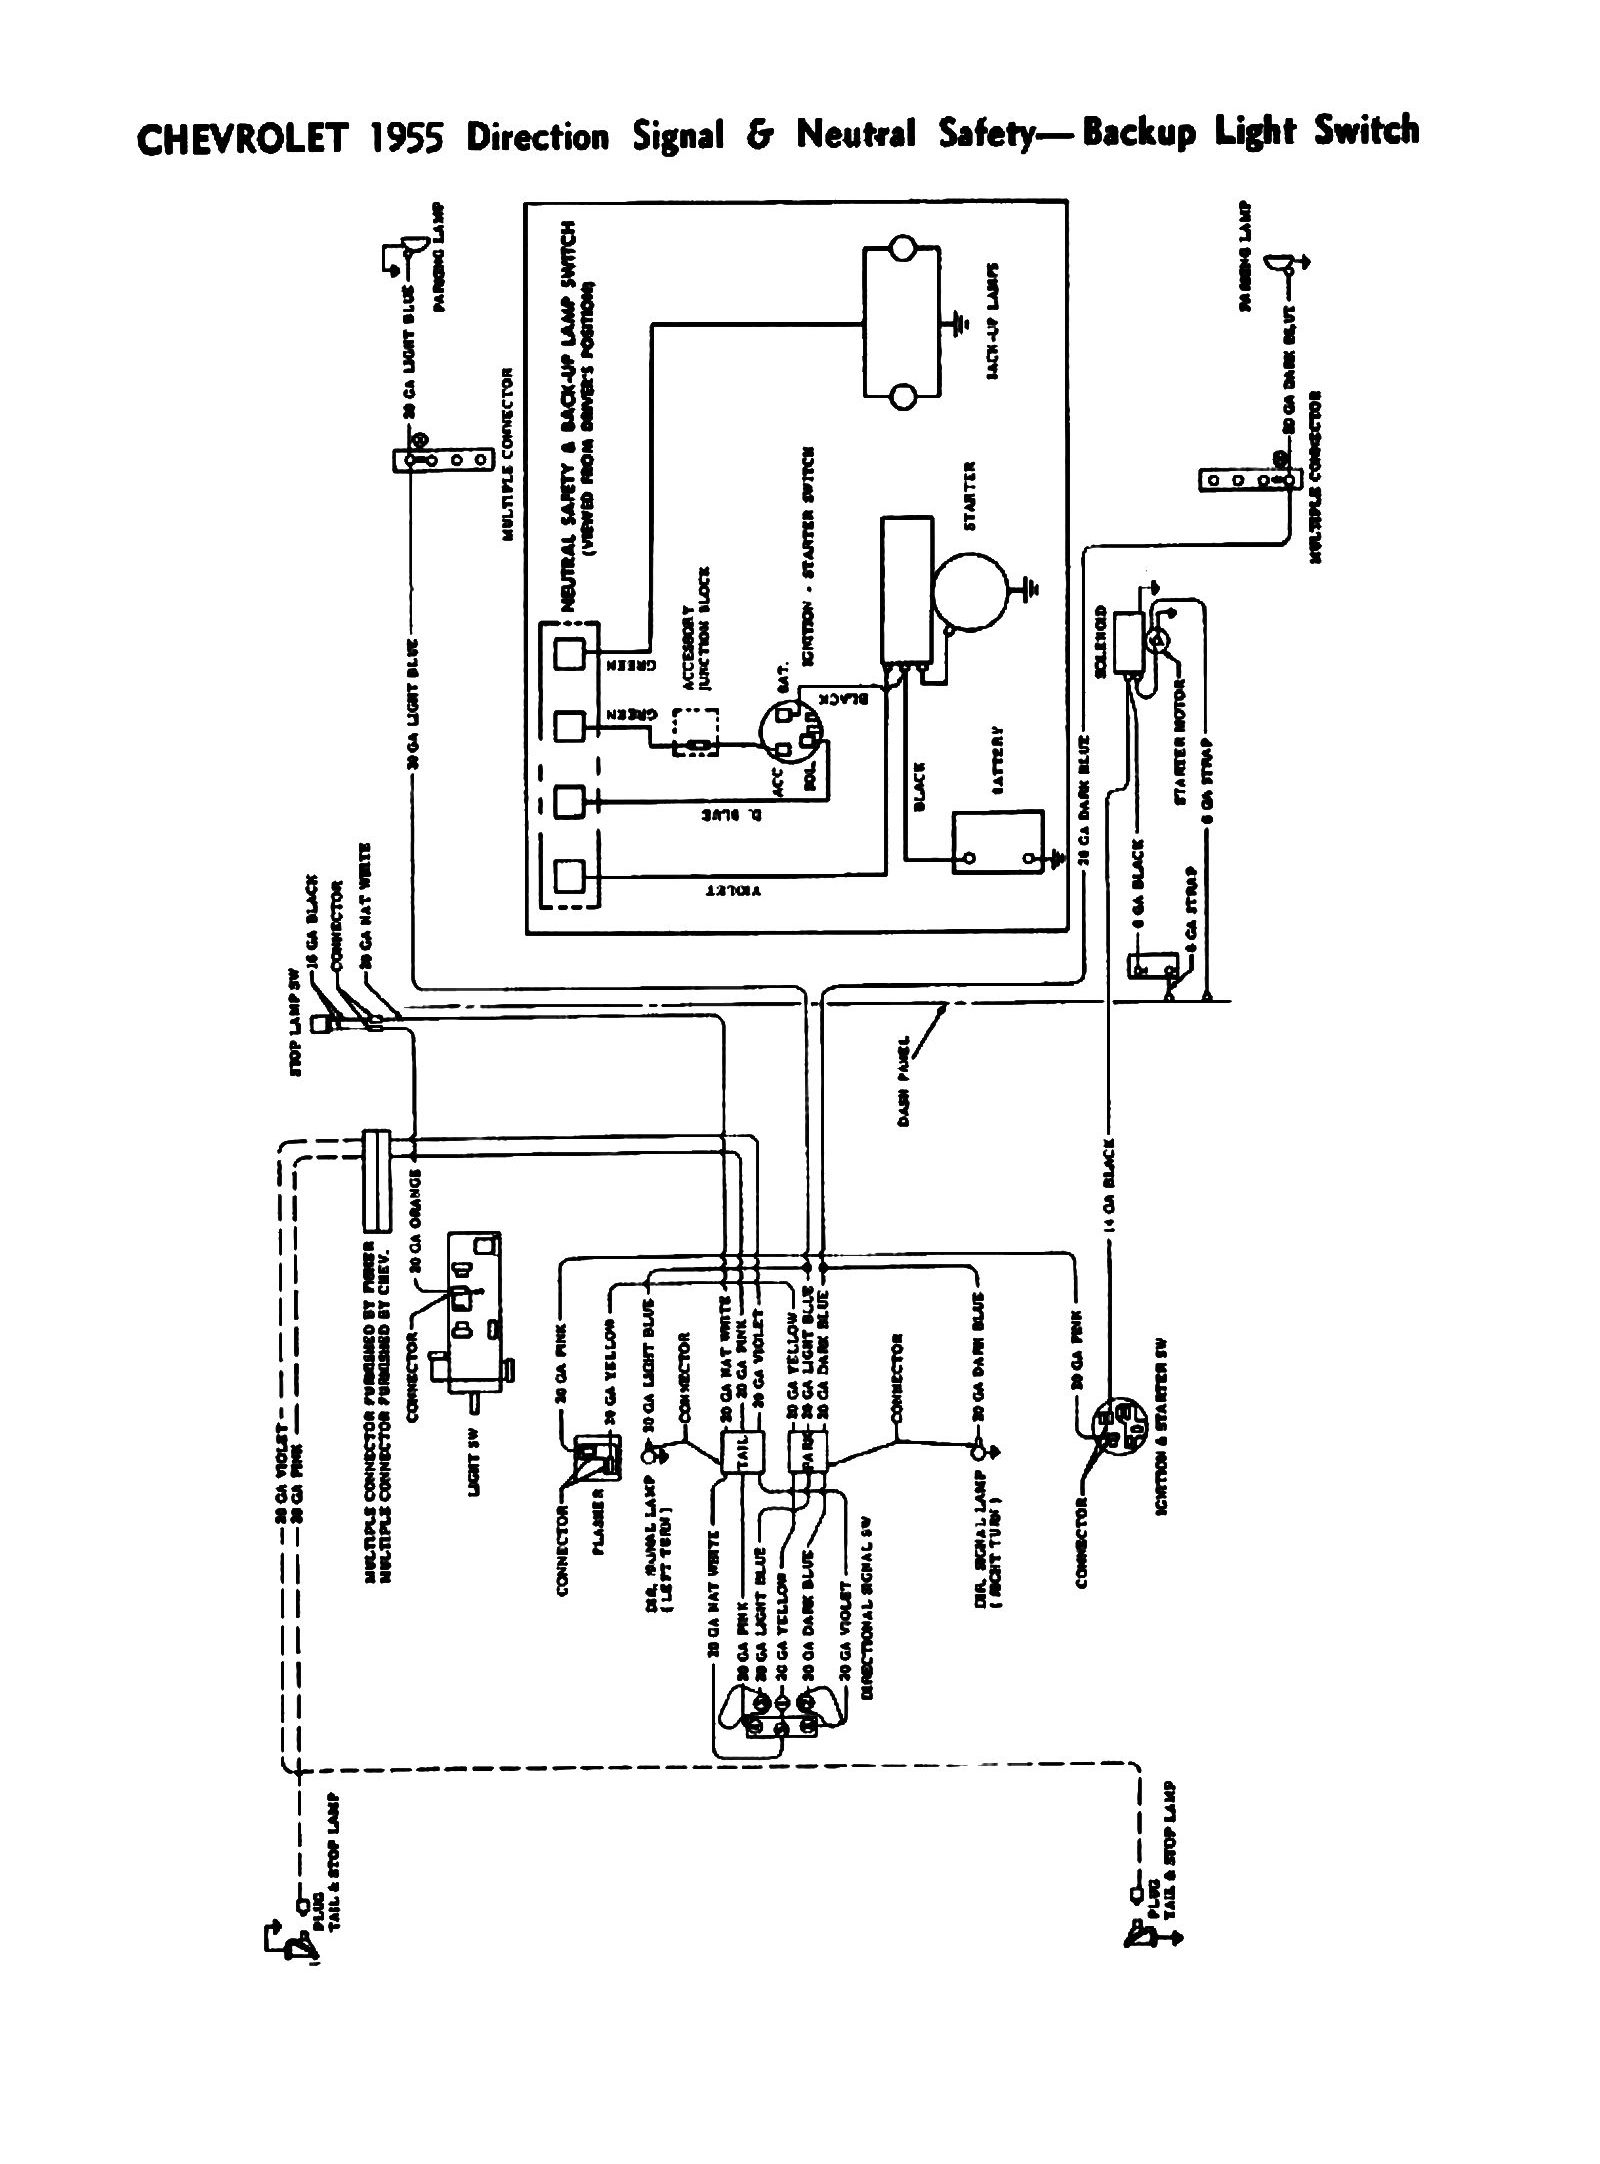 hight resolution of ignition wiring on a 1950 chevy wiring diagram databaseignition wiring on a 1950 chevy wiring diagram